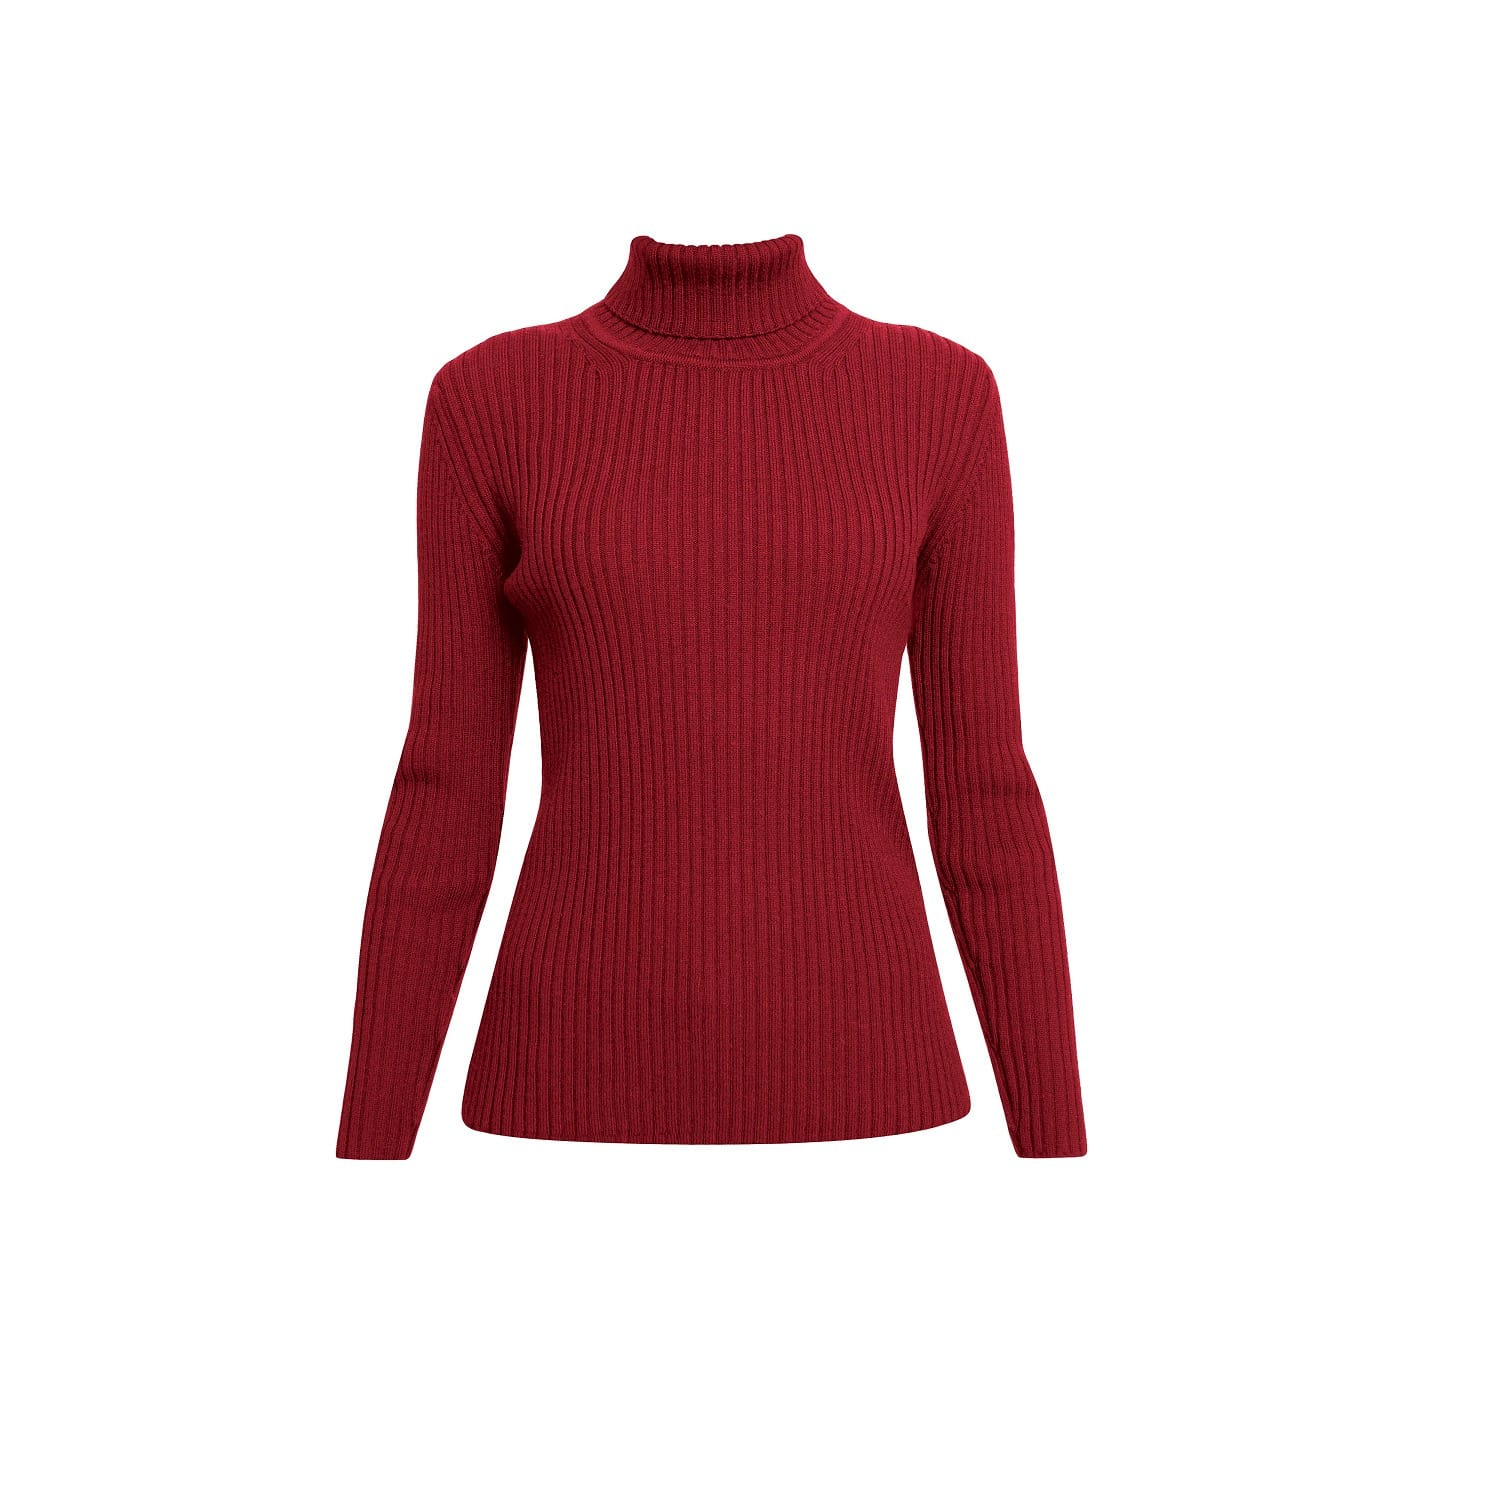 Red Jumper  MIA by Rumour London Red Ribbed Turtleneck Sweater